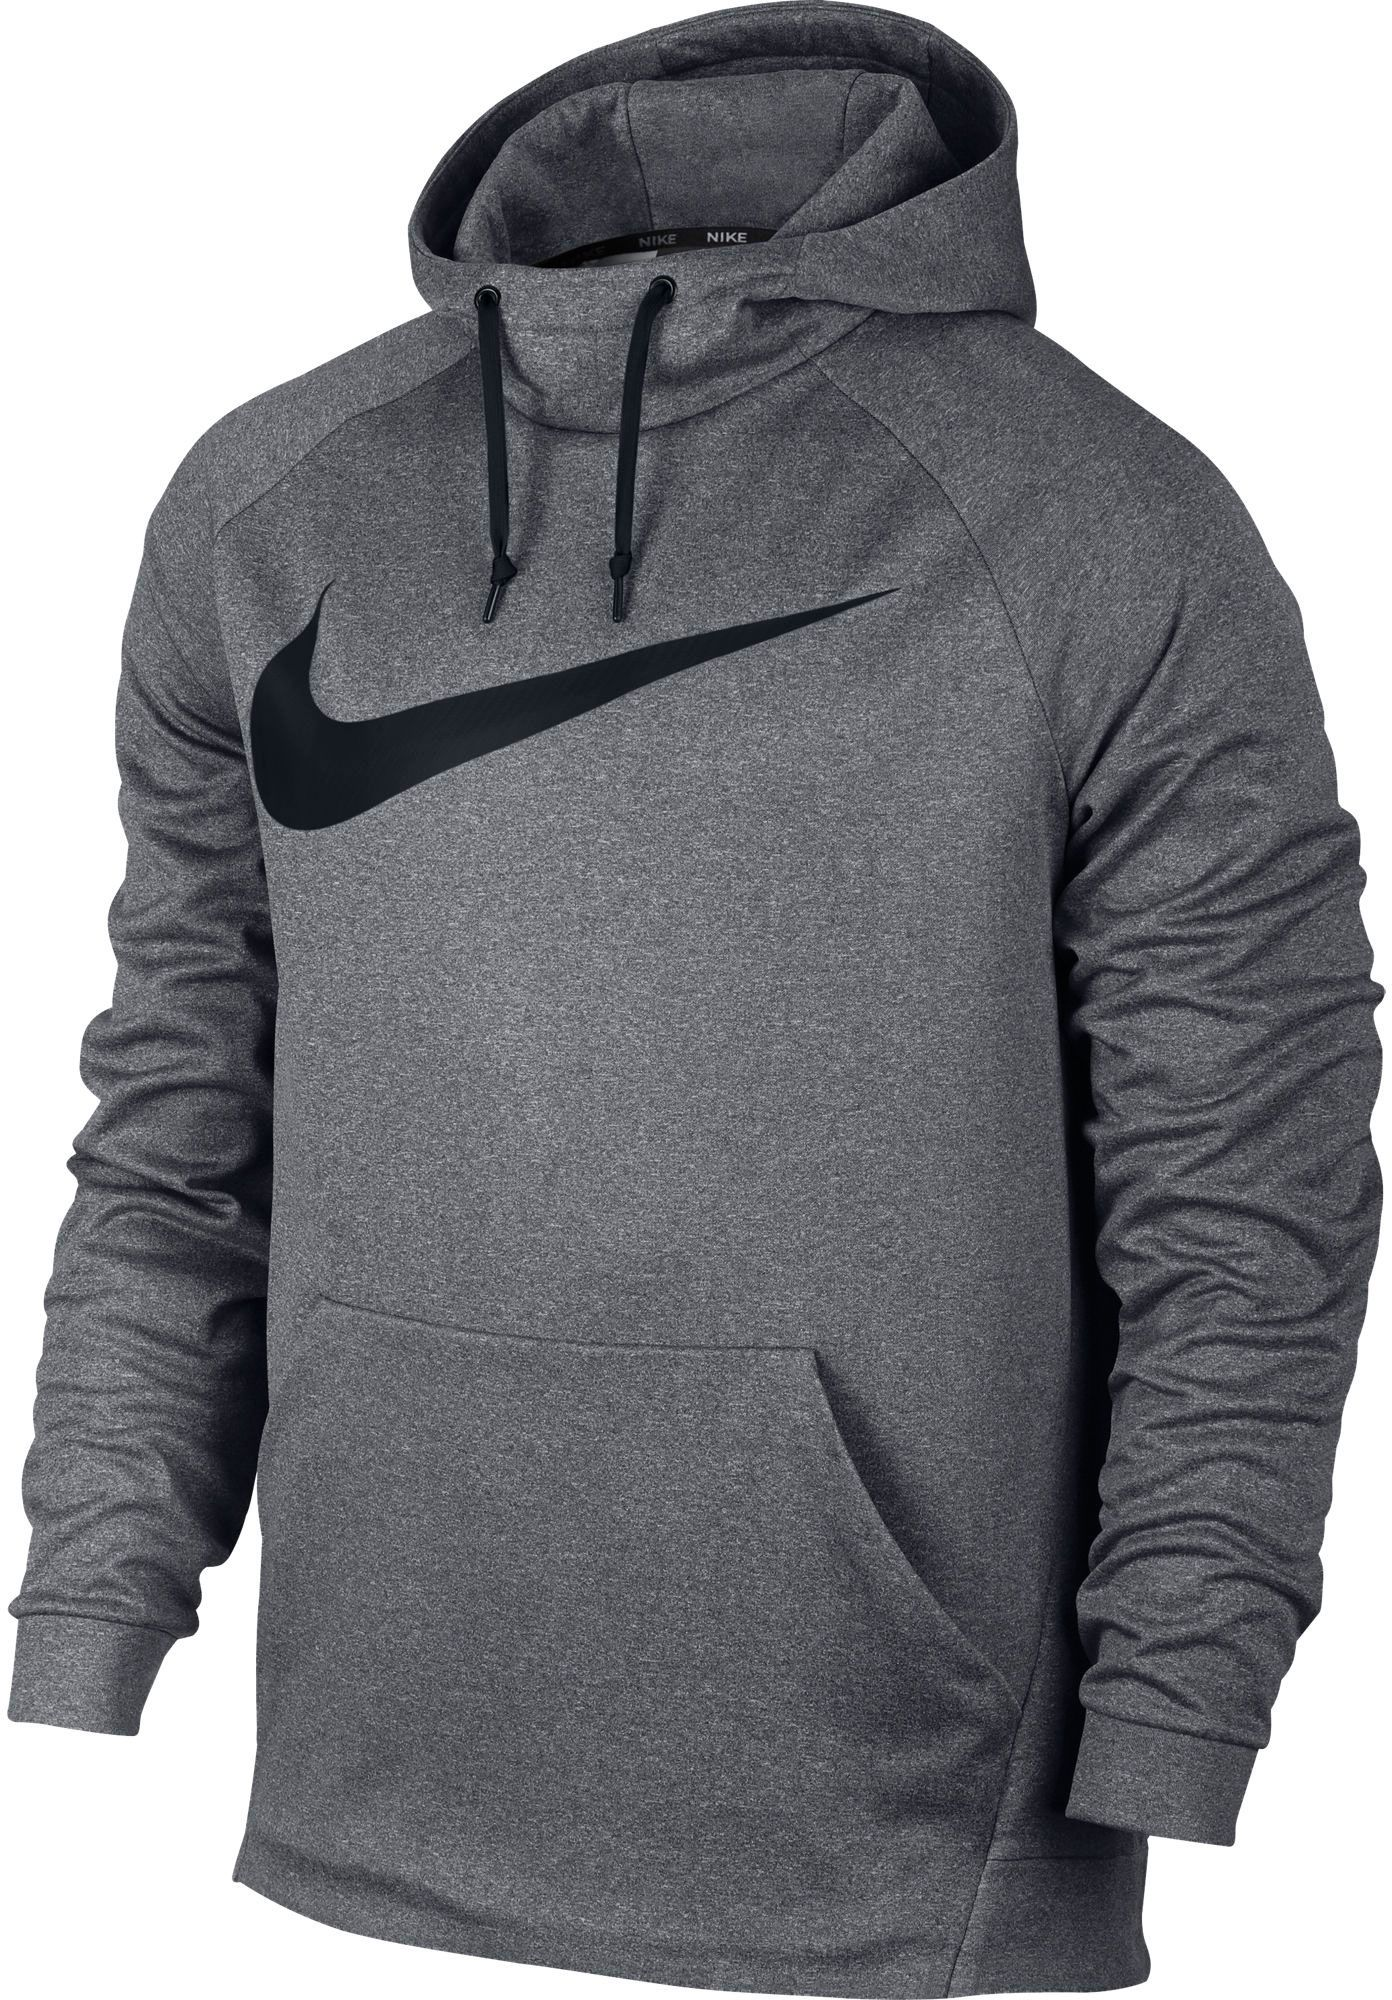 Nike Mens Therma Swoosh Graphic Hoodie